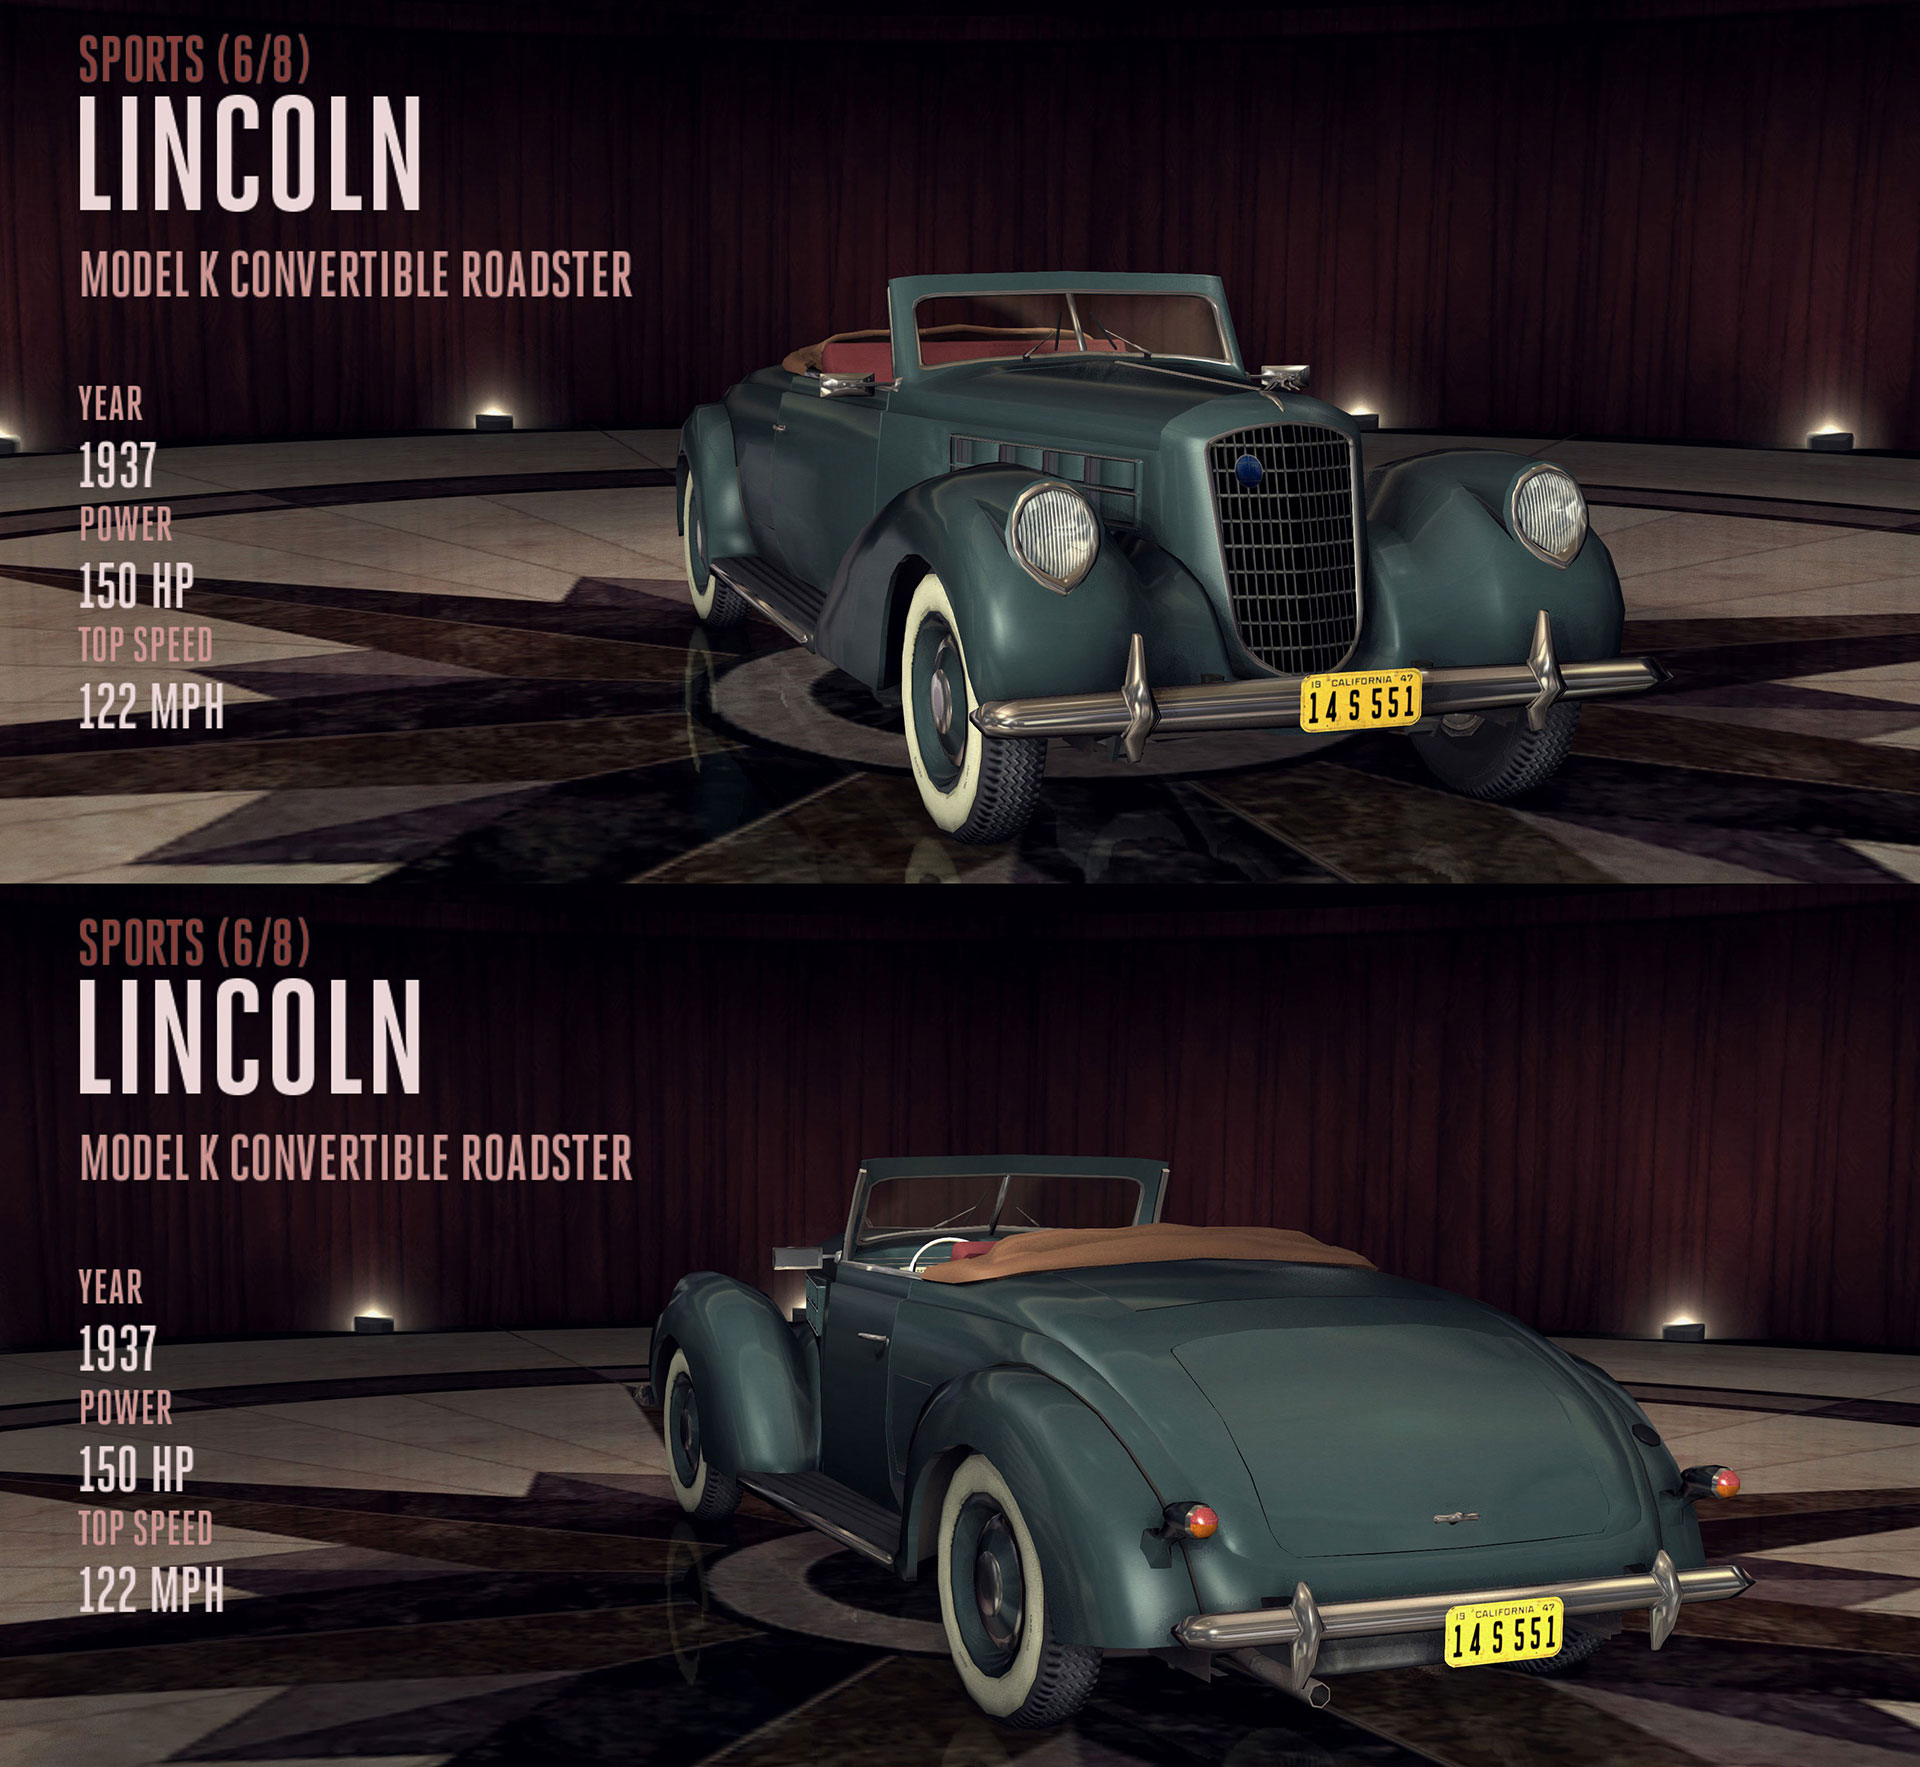 Archivo:1937-lincoln-model-k-convertible-roadster.jpg